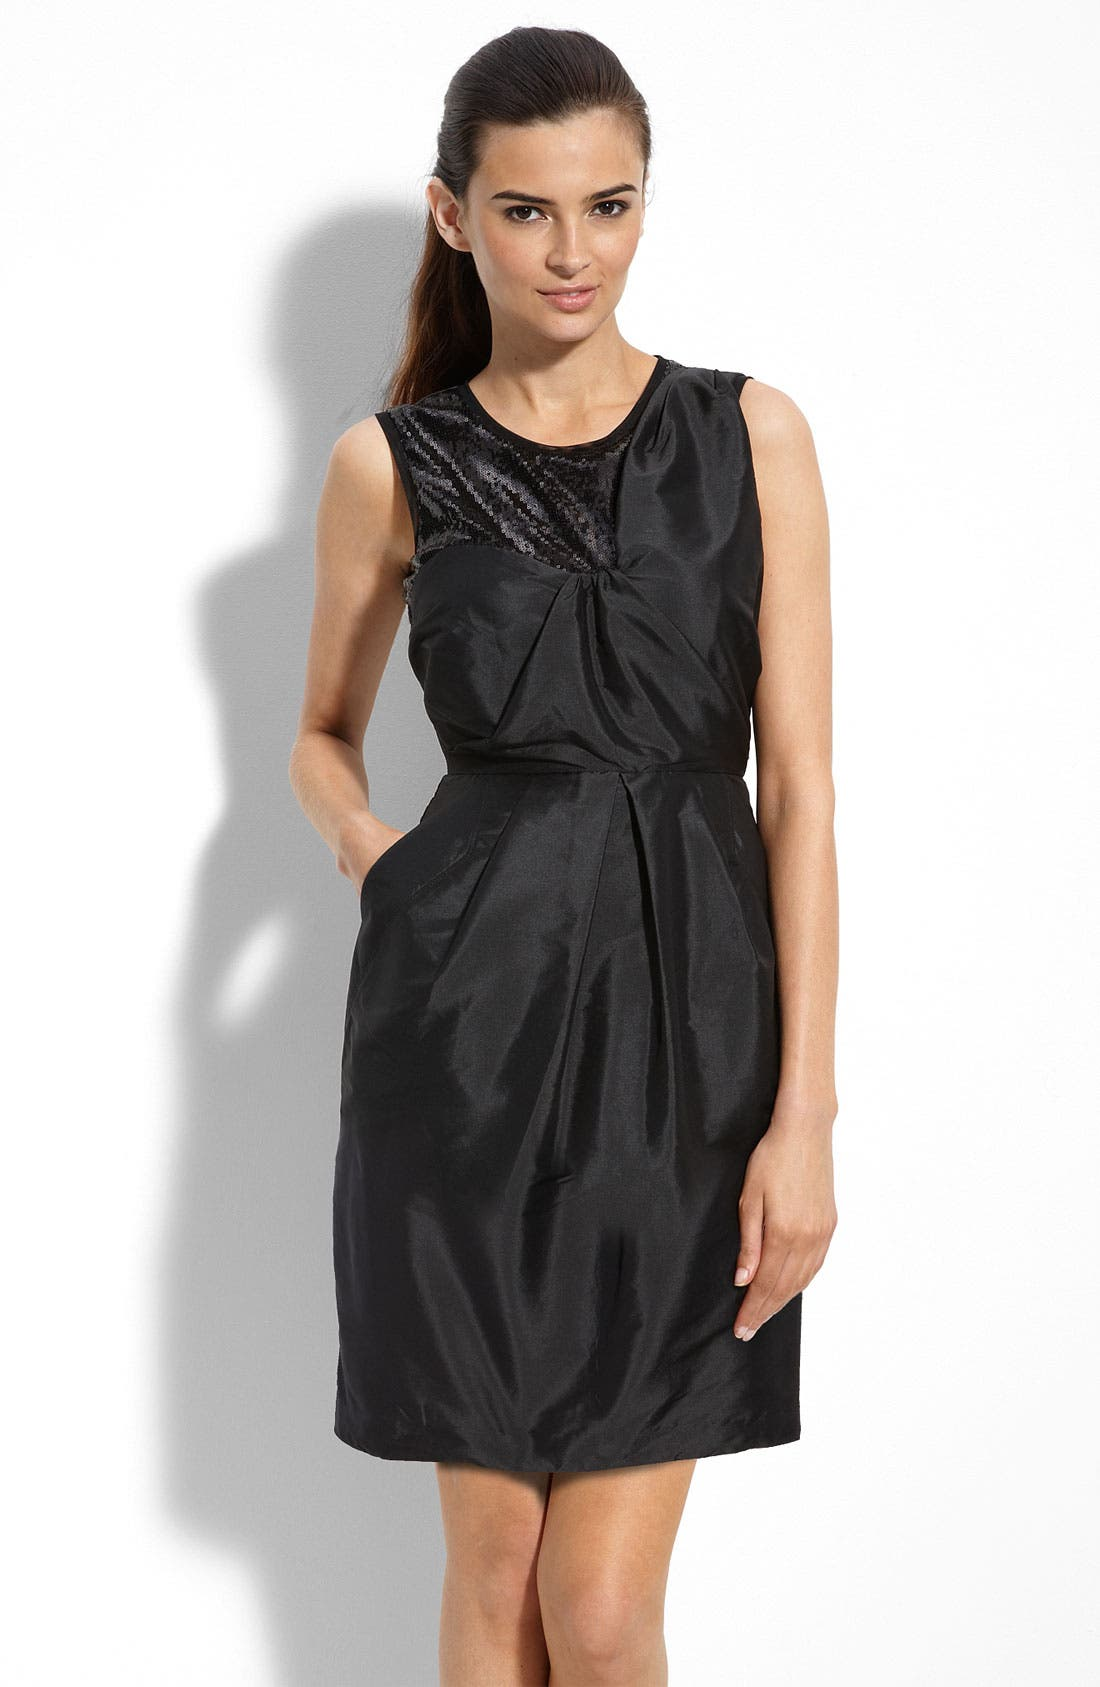 Alternate Image 1 Selected - Alexia Admor Sequin Trim Taffeta Sheath Dress